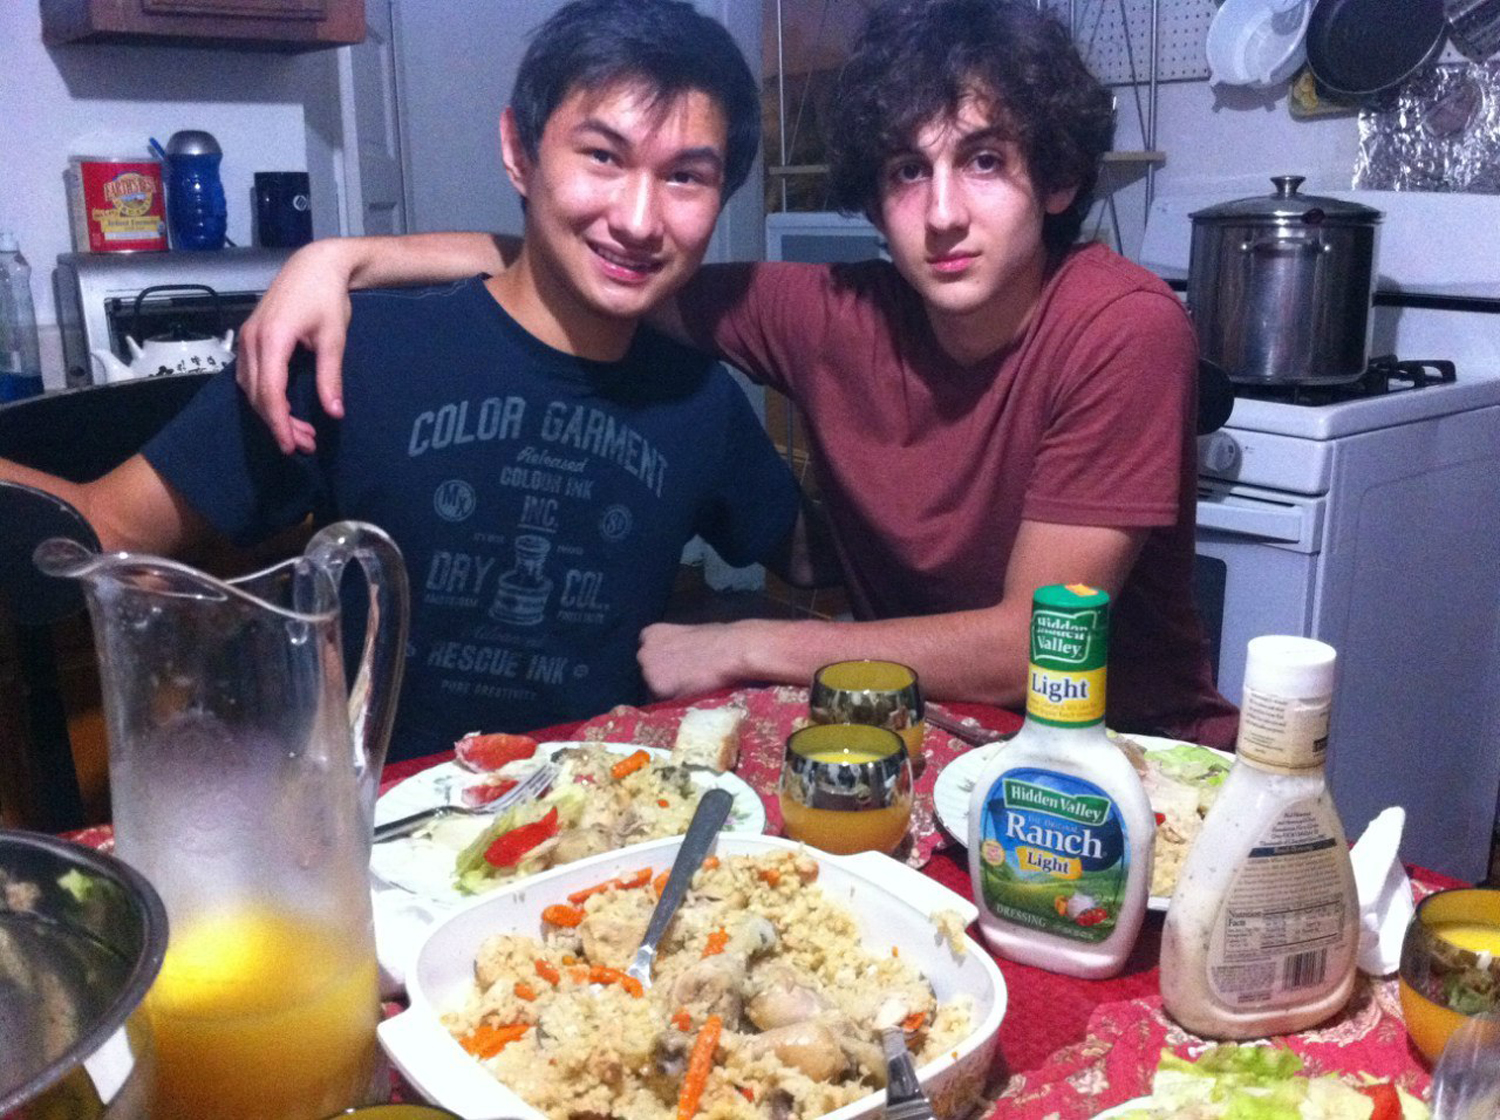 This undated photo found on the VK page of Dias Kadyrbayev shows Kadyrbayev, left, with Boston Marathon bombing suspect Dzhokhar Tsarnaev, at an unknown location. Kadyrbayev and Azamat Tazhayakov, two college buddies of Tsarnaev from Kazakhstan, were jailed by immigration authorities the day after his Tsarnaev's capture. They are not suspects, but are being held for violating their student visas by not regularly attending classes, Kadyrbayev's lawyer, Robert Stahl said. They are being detained at a county jail in Boston. (AP Photo/VK)